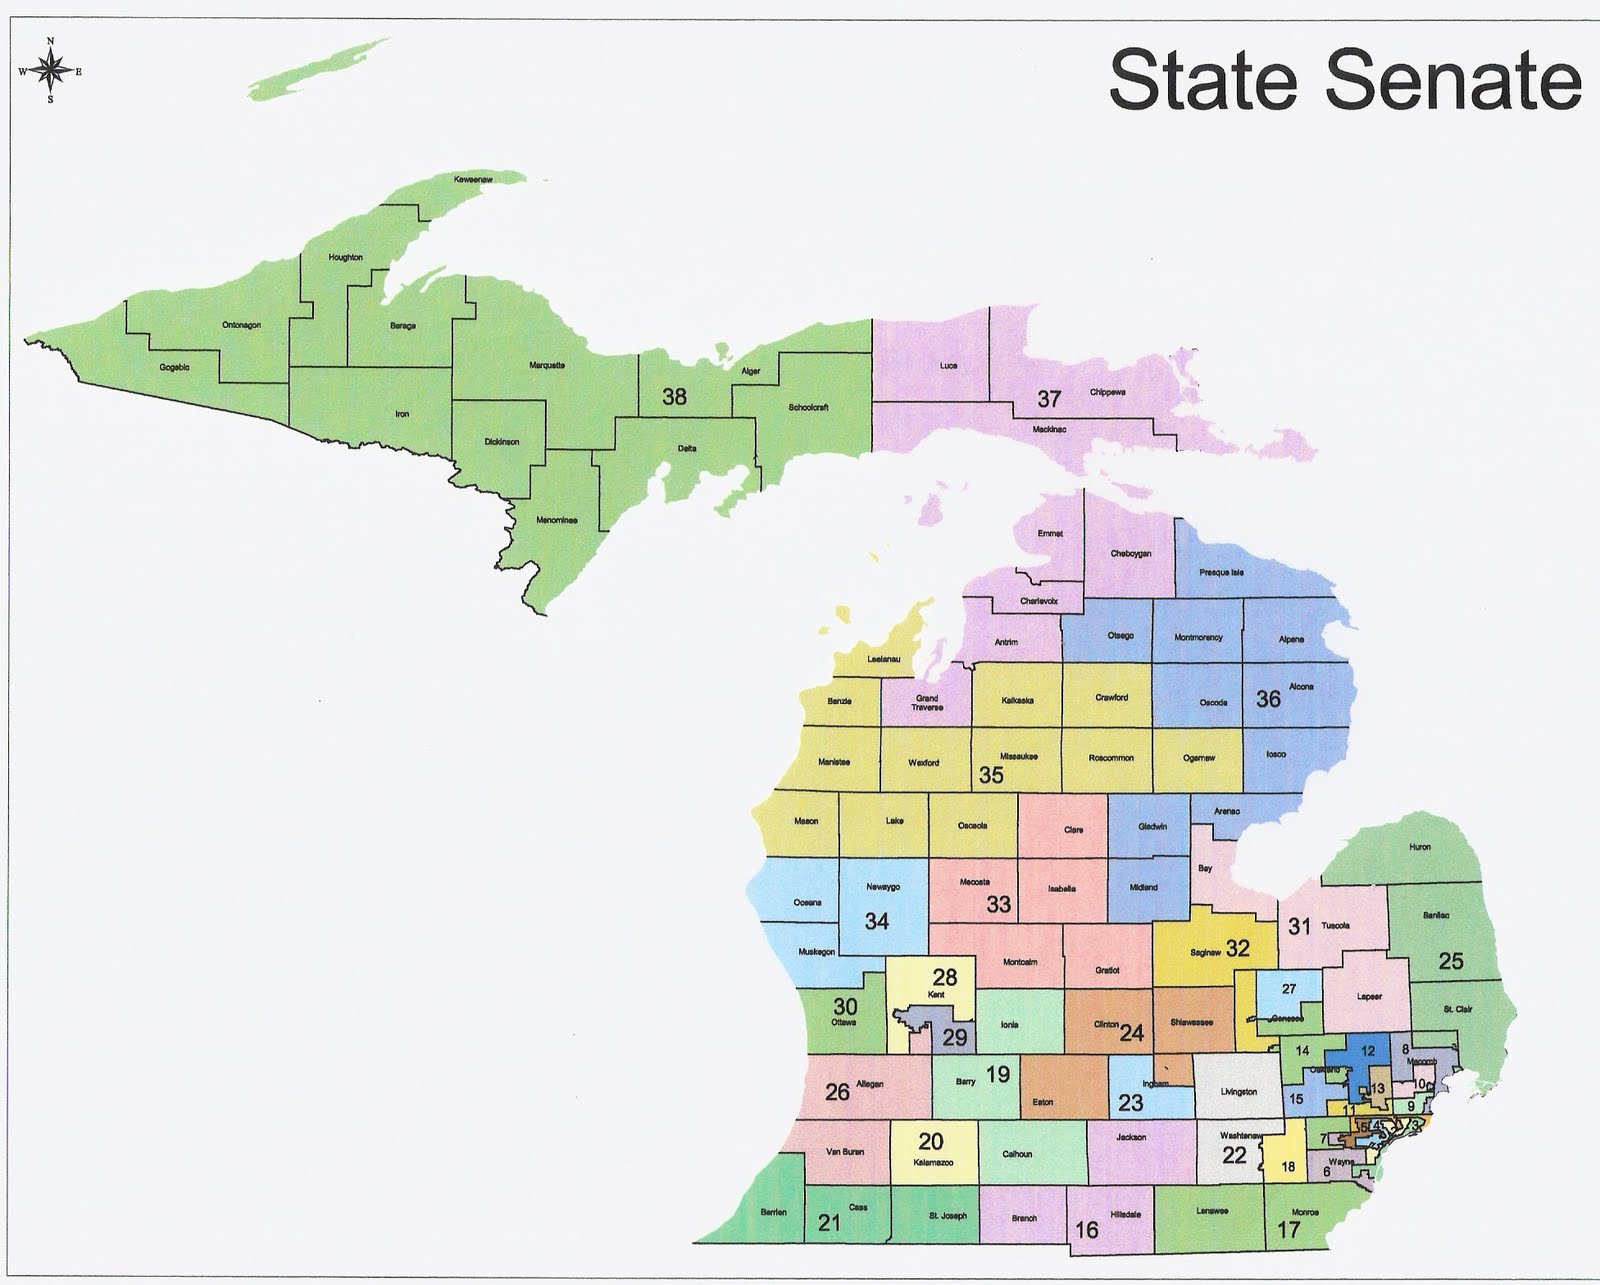 Michigan Redistricting Republican State Senate Map Passed RRH - Map of the state of michigan